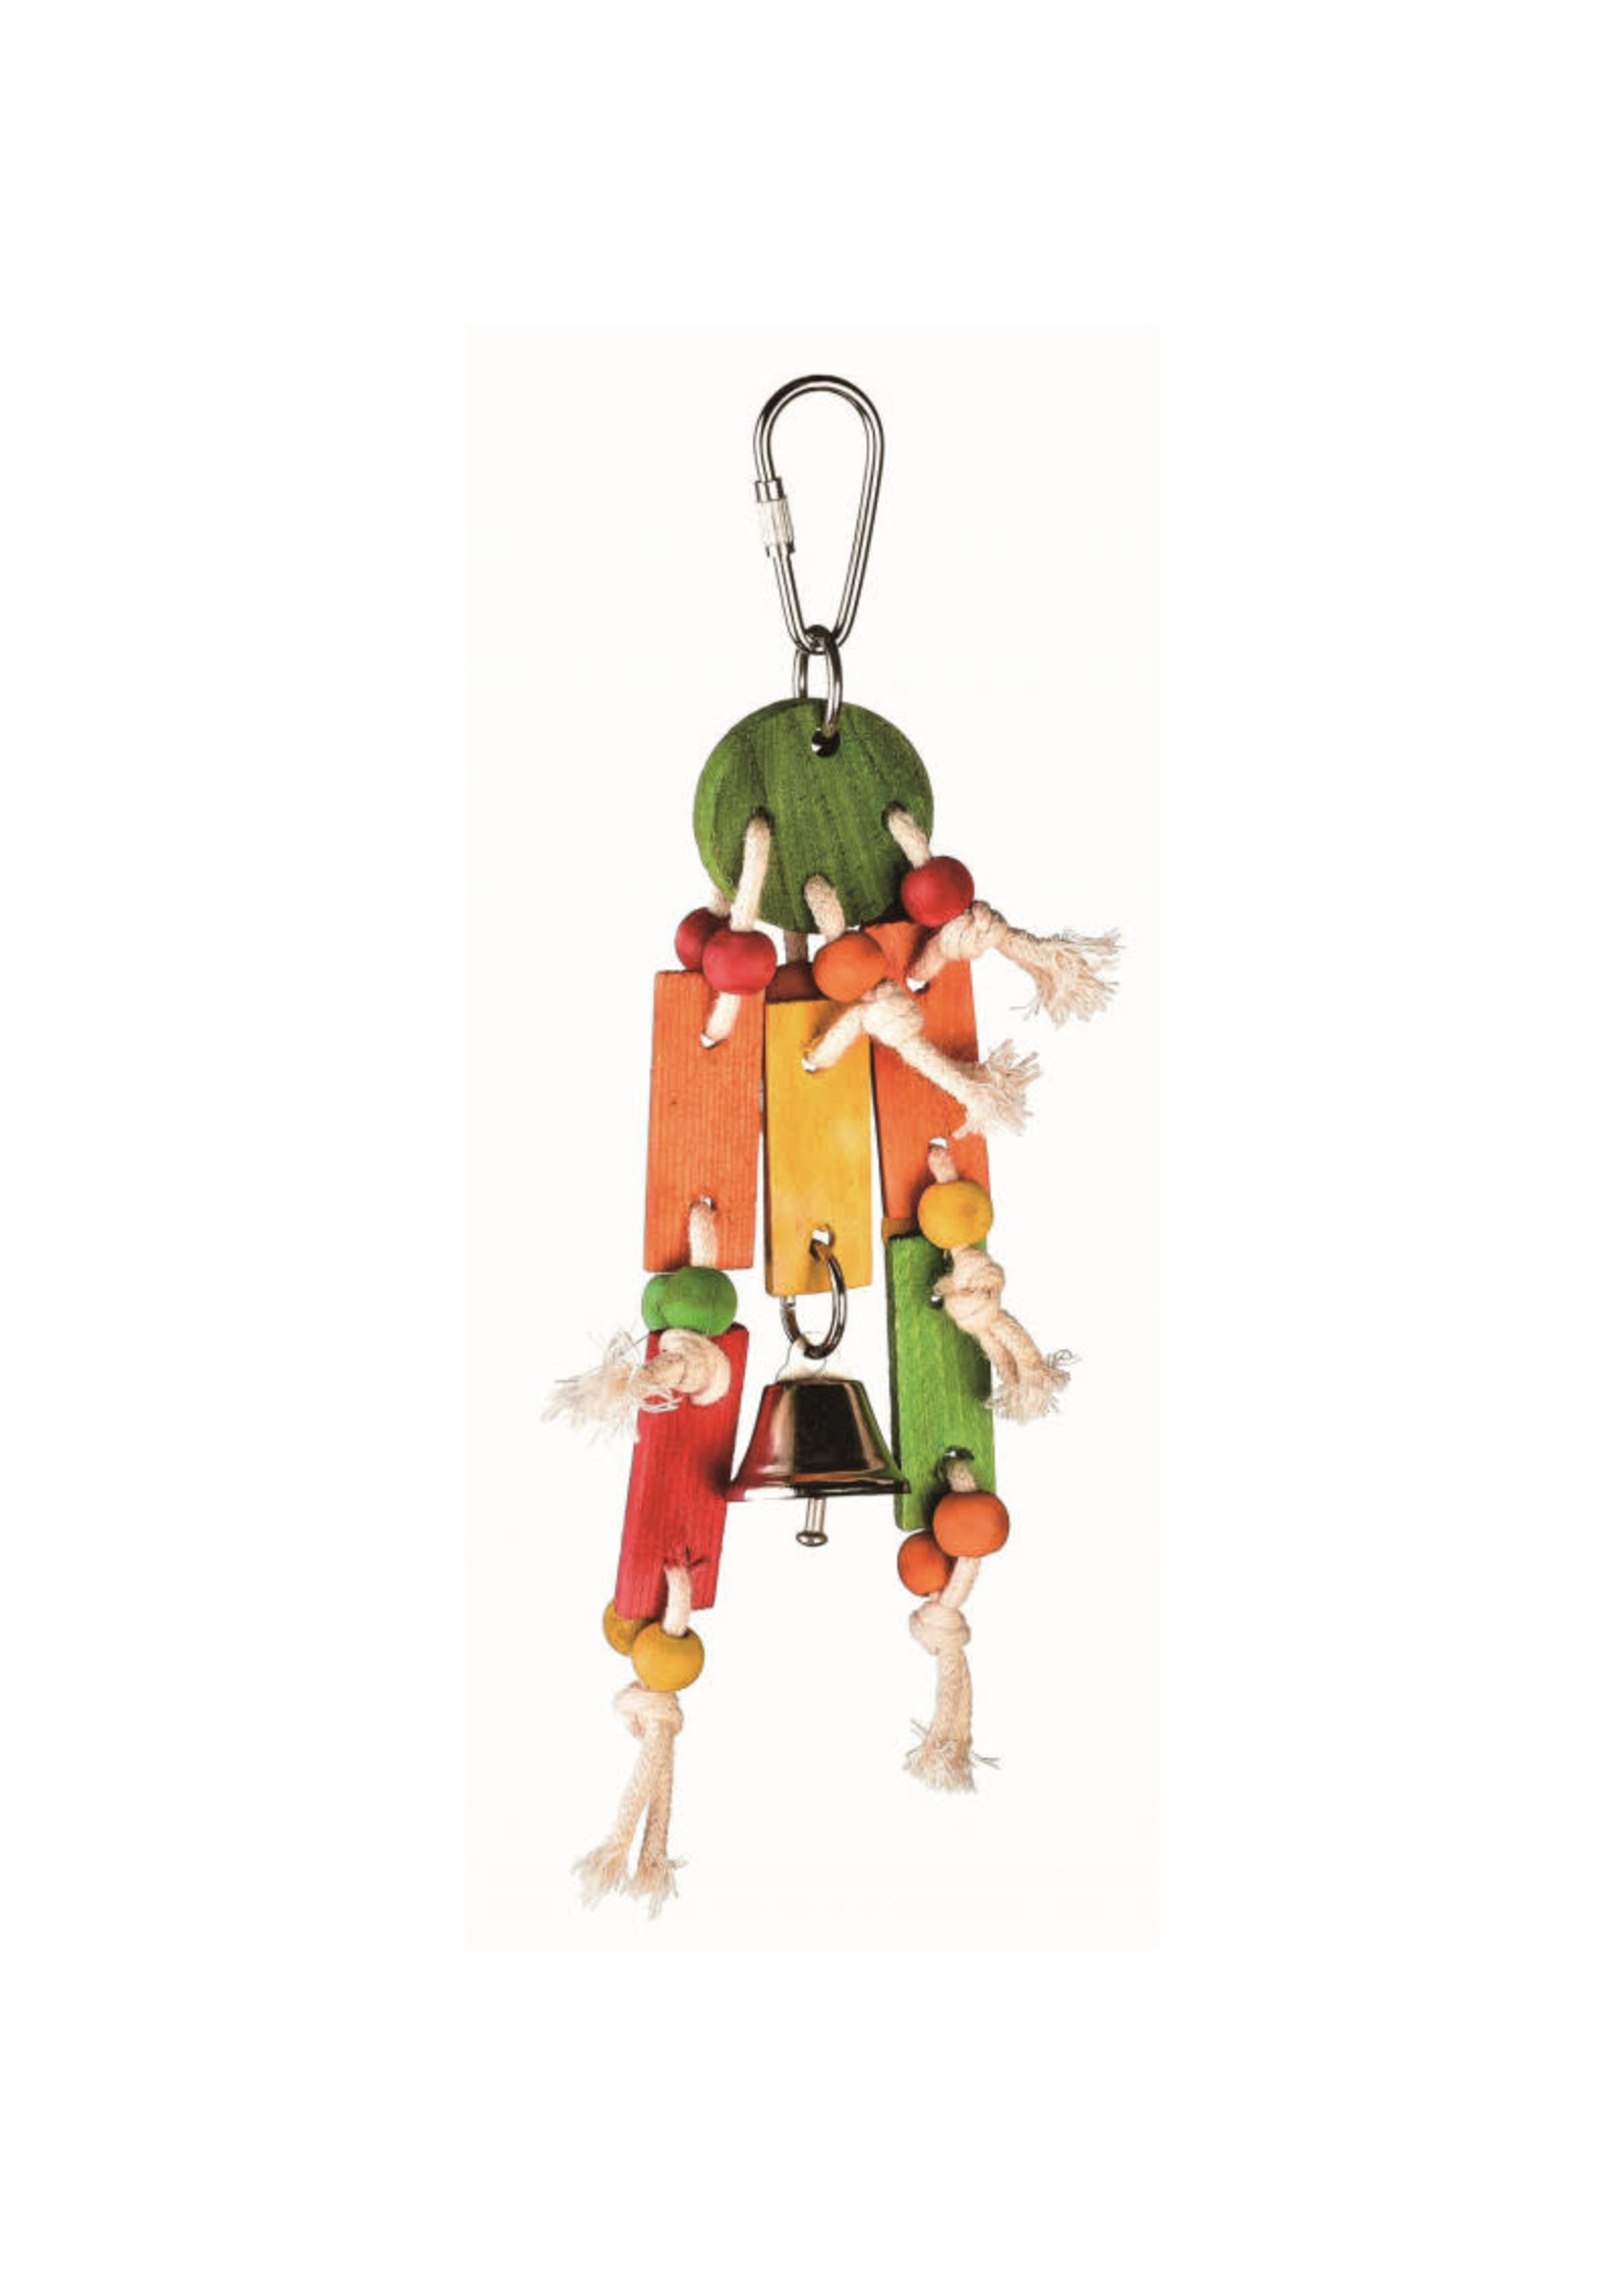 Jolly Jungle GP SMALL COIN TOSS BIRD TOY WITH BELL